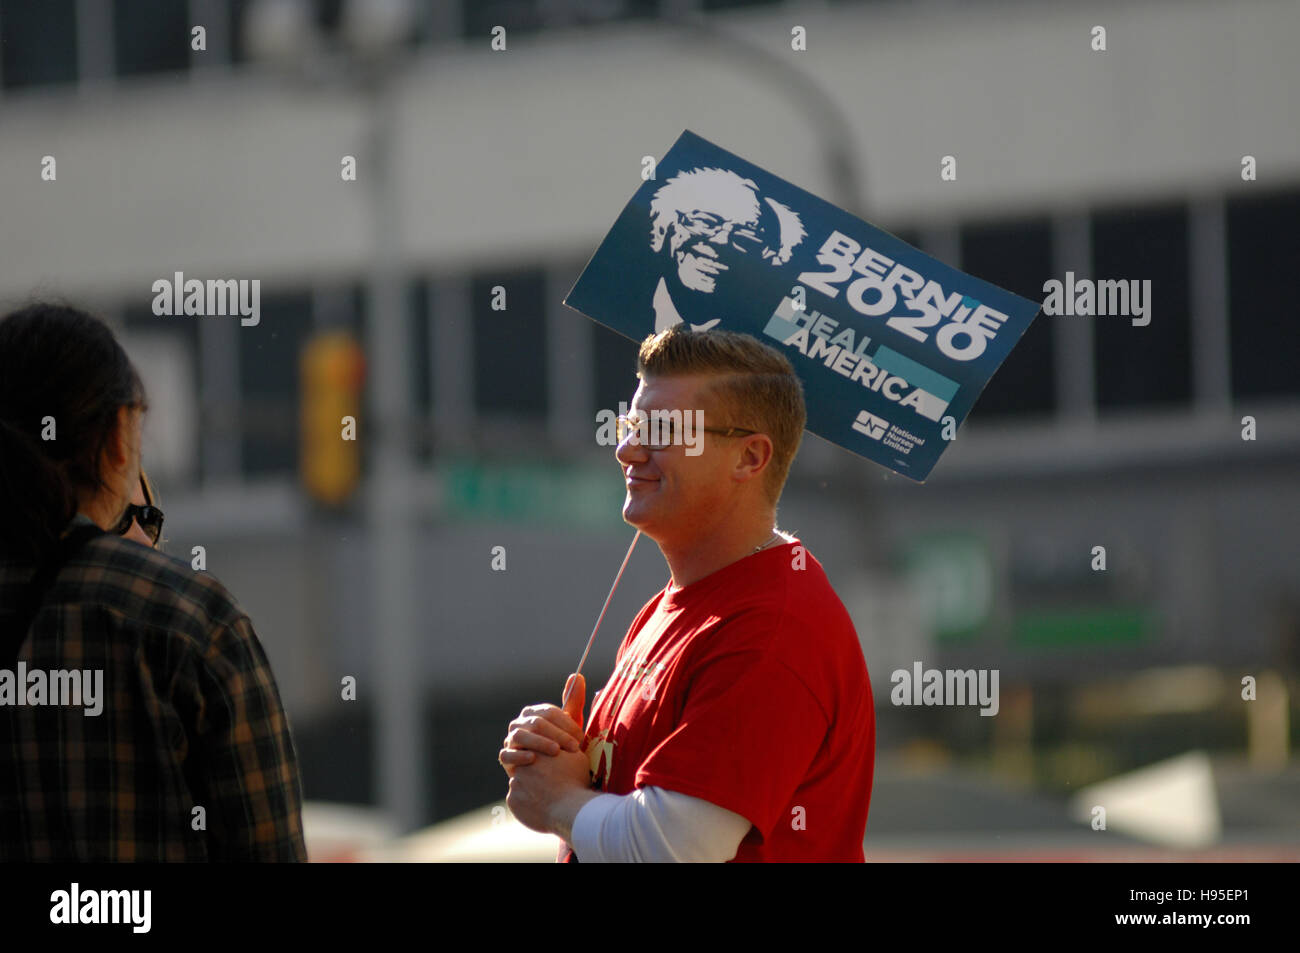 Philadelphia, Pennsylvania, USA. 19th November, 2016. Protester is seen holding a sign in  support of Bernie Sanders - Stock Image